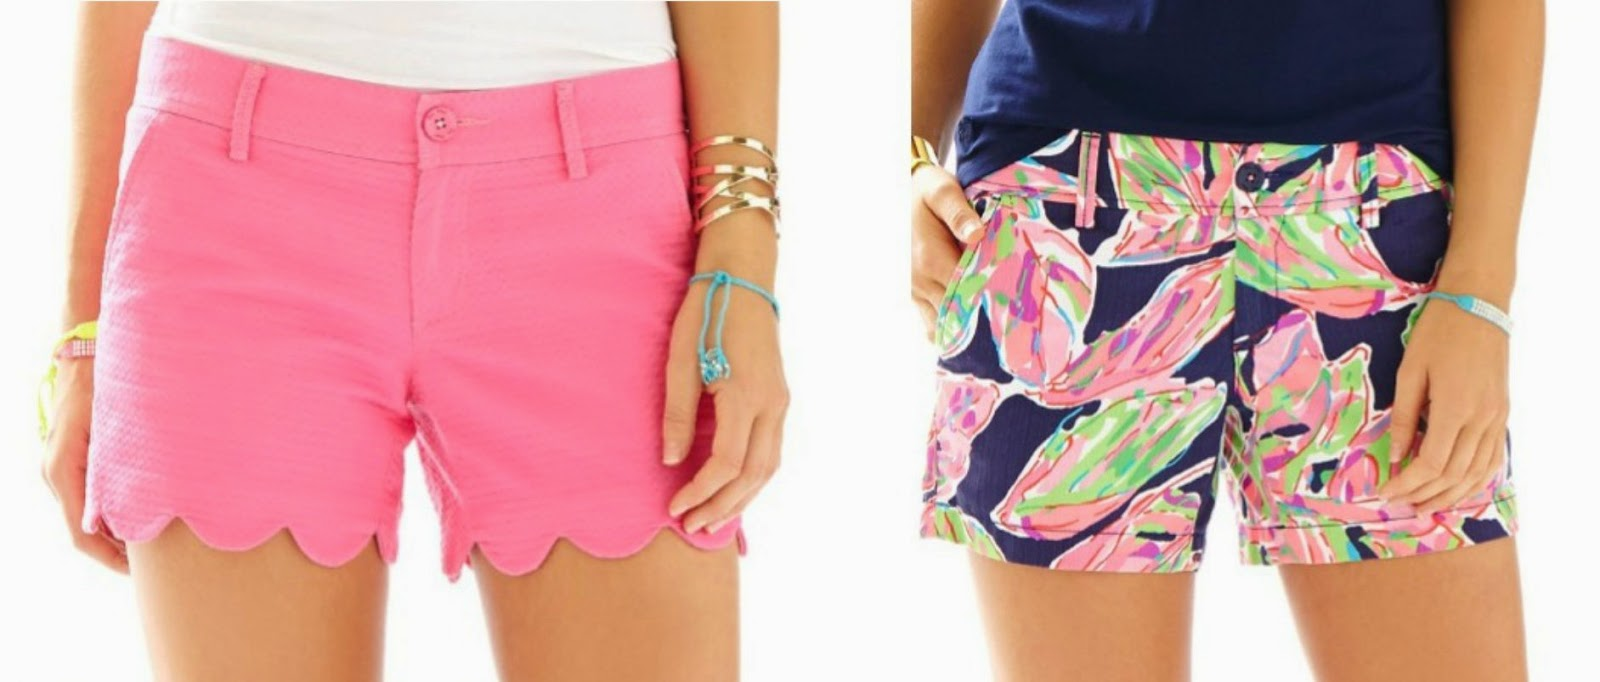 lilly pulitzer scalloped shorts callahan shorts